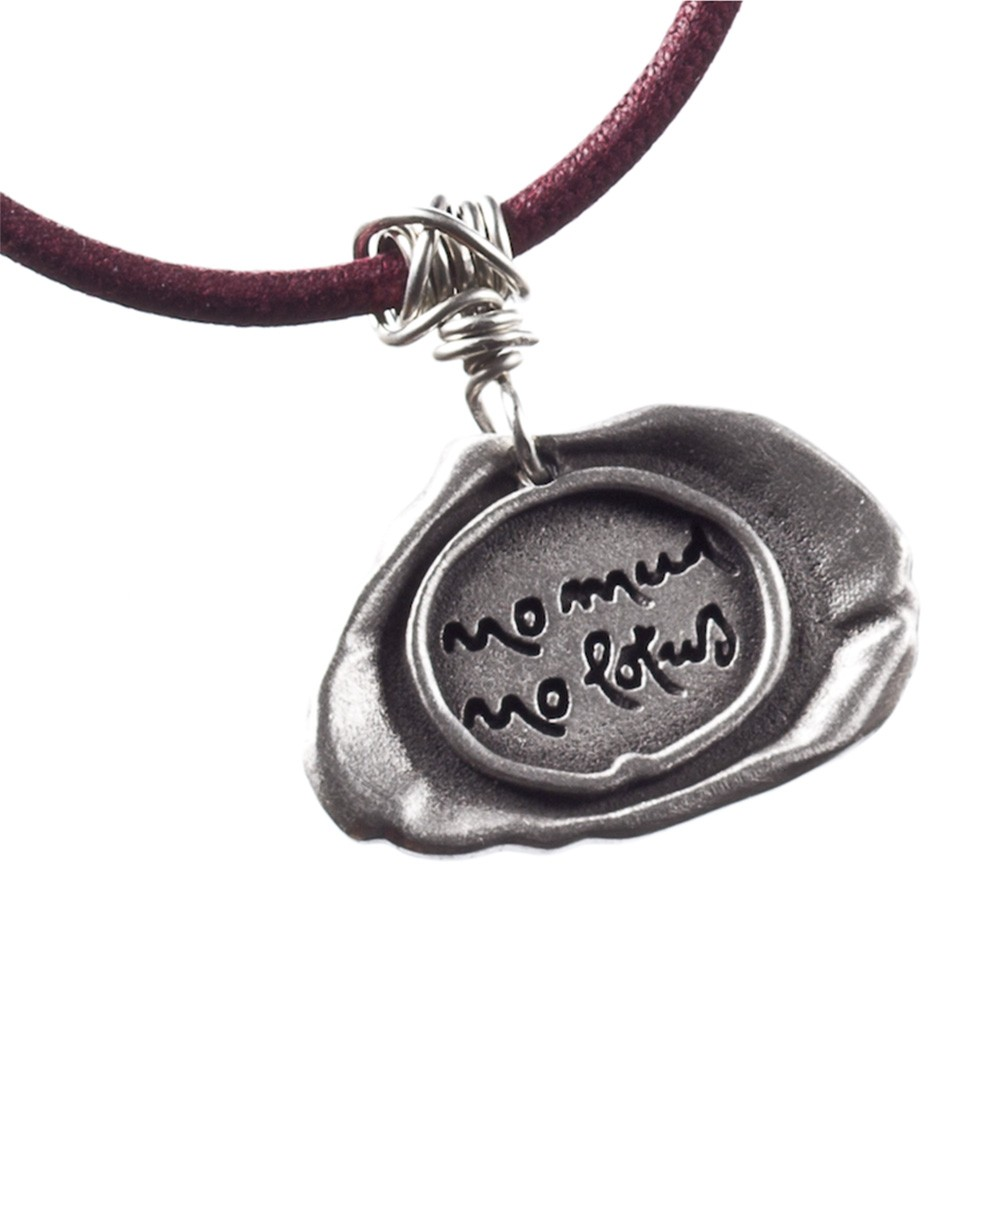 Thich Nhat Hanh No Mud No Lotus Pendant Necklace